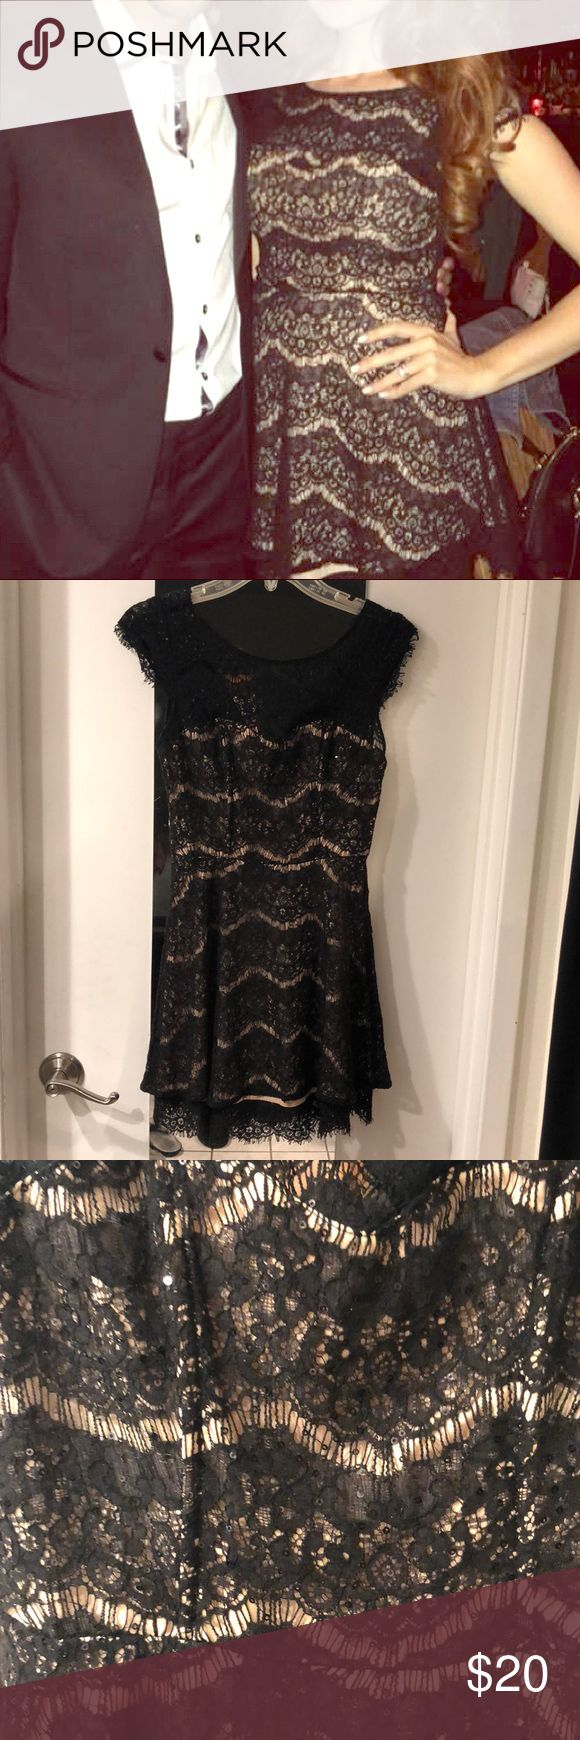 ❤️Forever 21 Black & Nude Sequin Dress❤️ Gorgeous sexy dress! Forever 21 Dresses